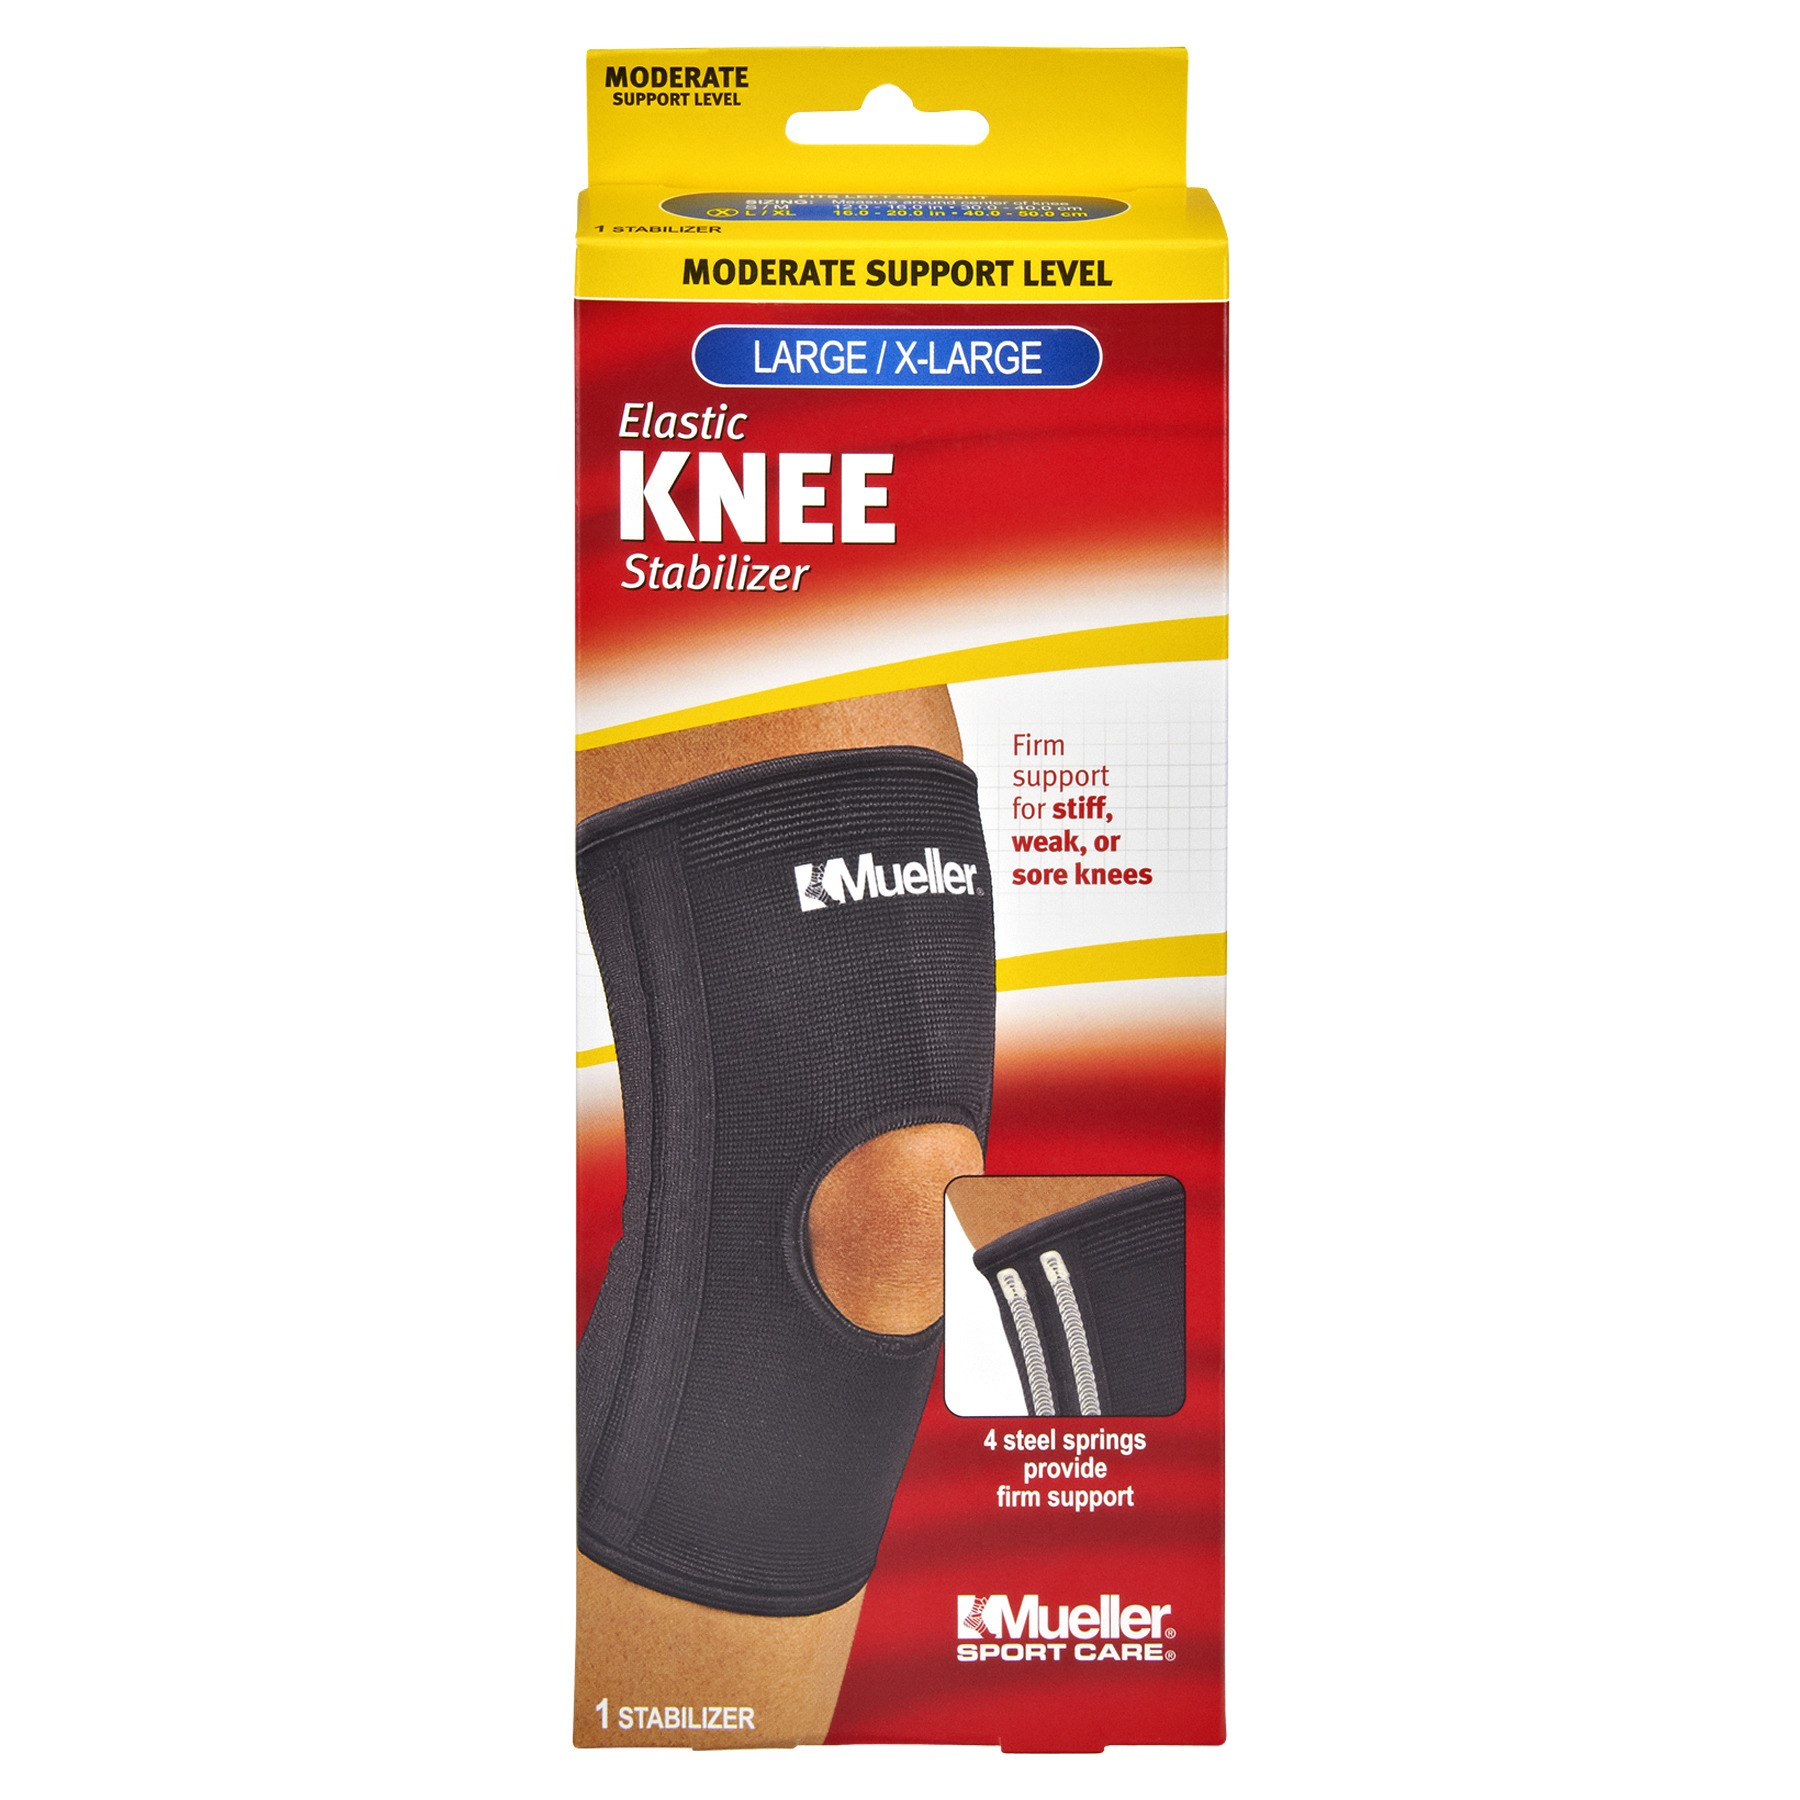 Mueller Sport Care Moderate Support Large/X-Large Elastic Knee Stabilizer, 1.0 CT